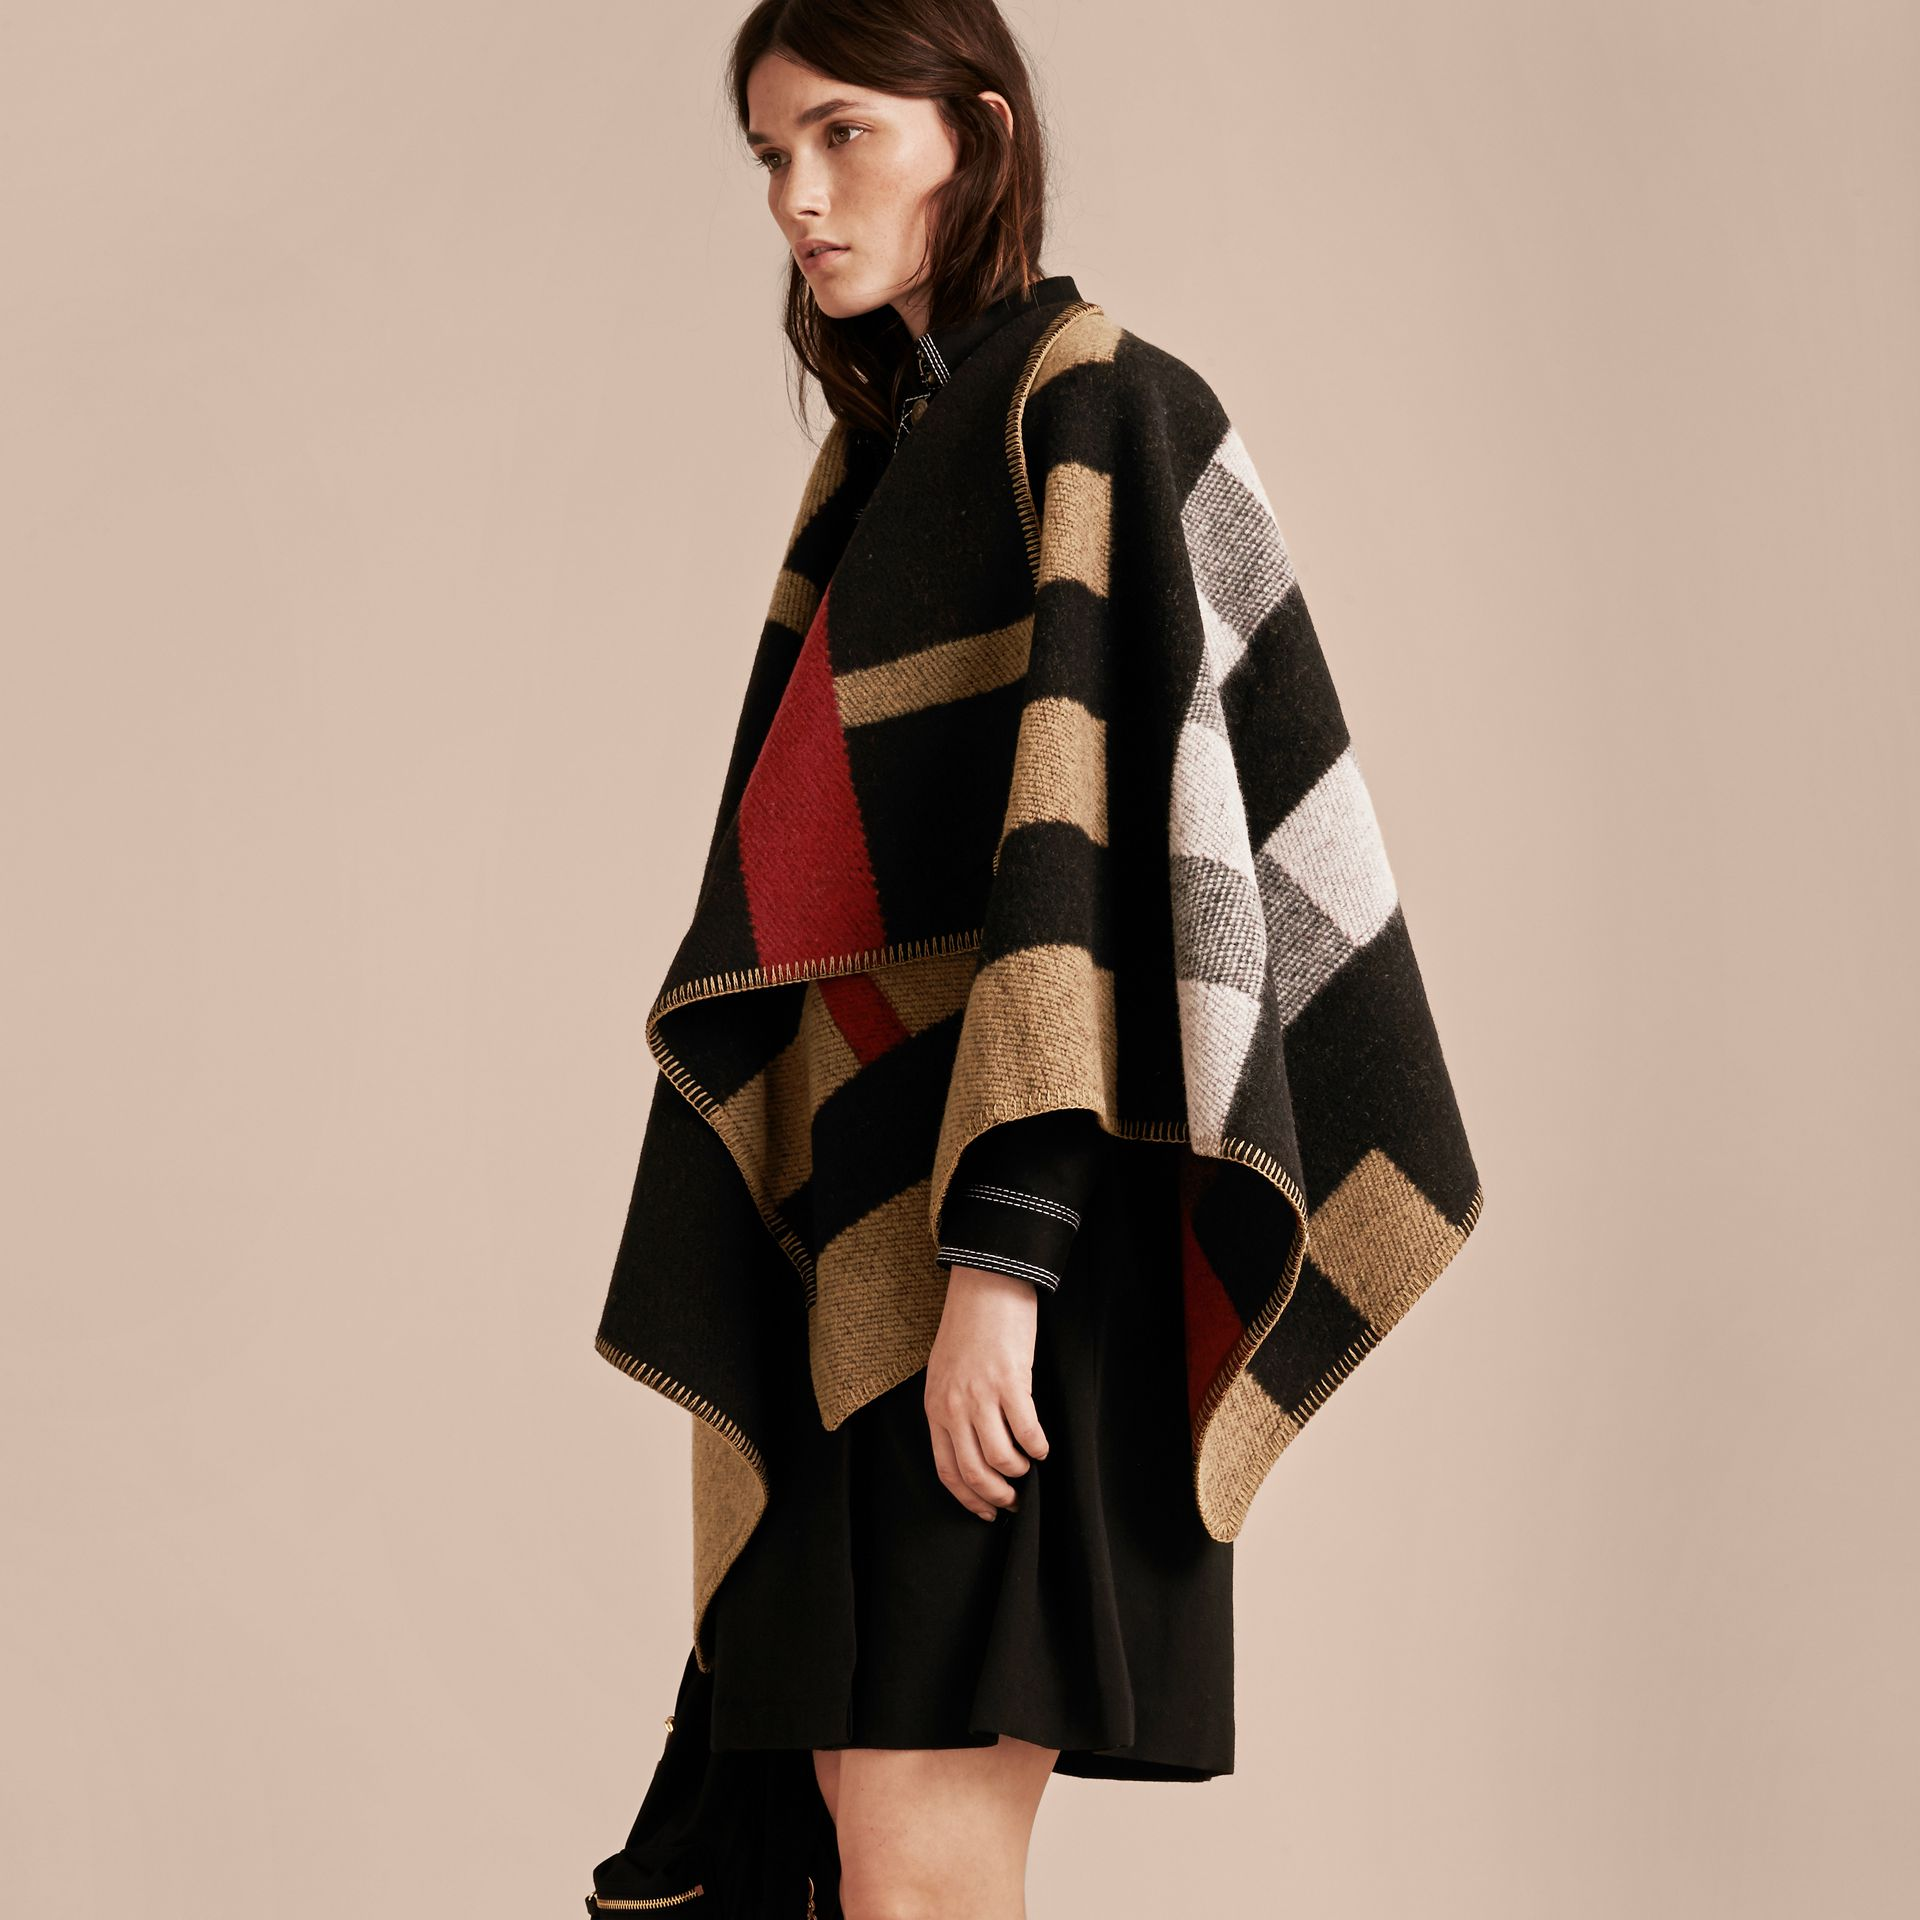 House check/black Check Wool and Cashmere Blanket Poncho - gallery image 1